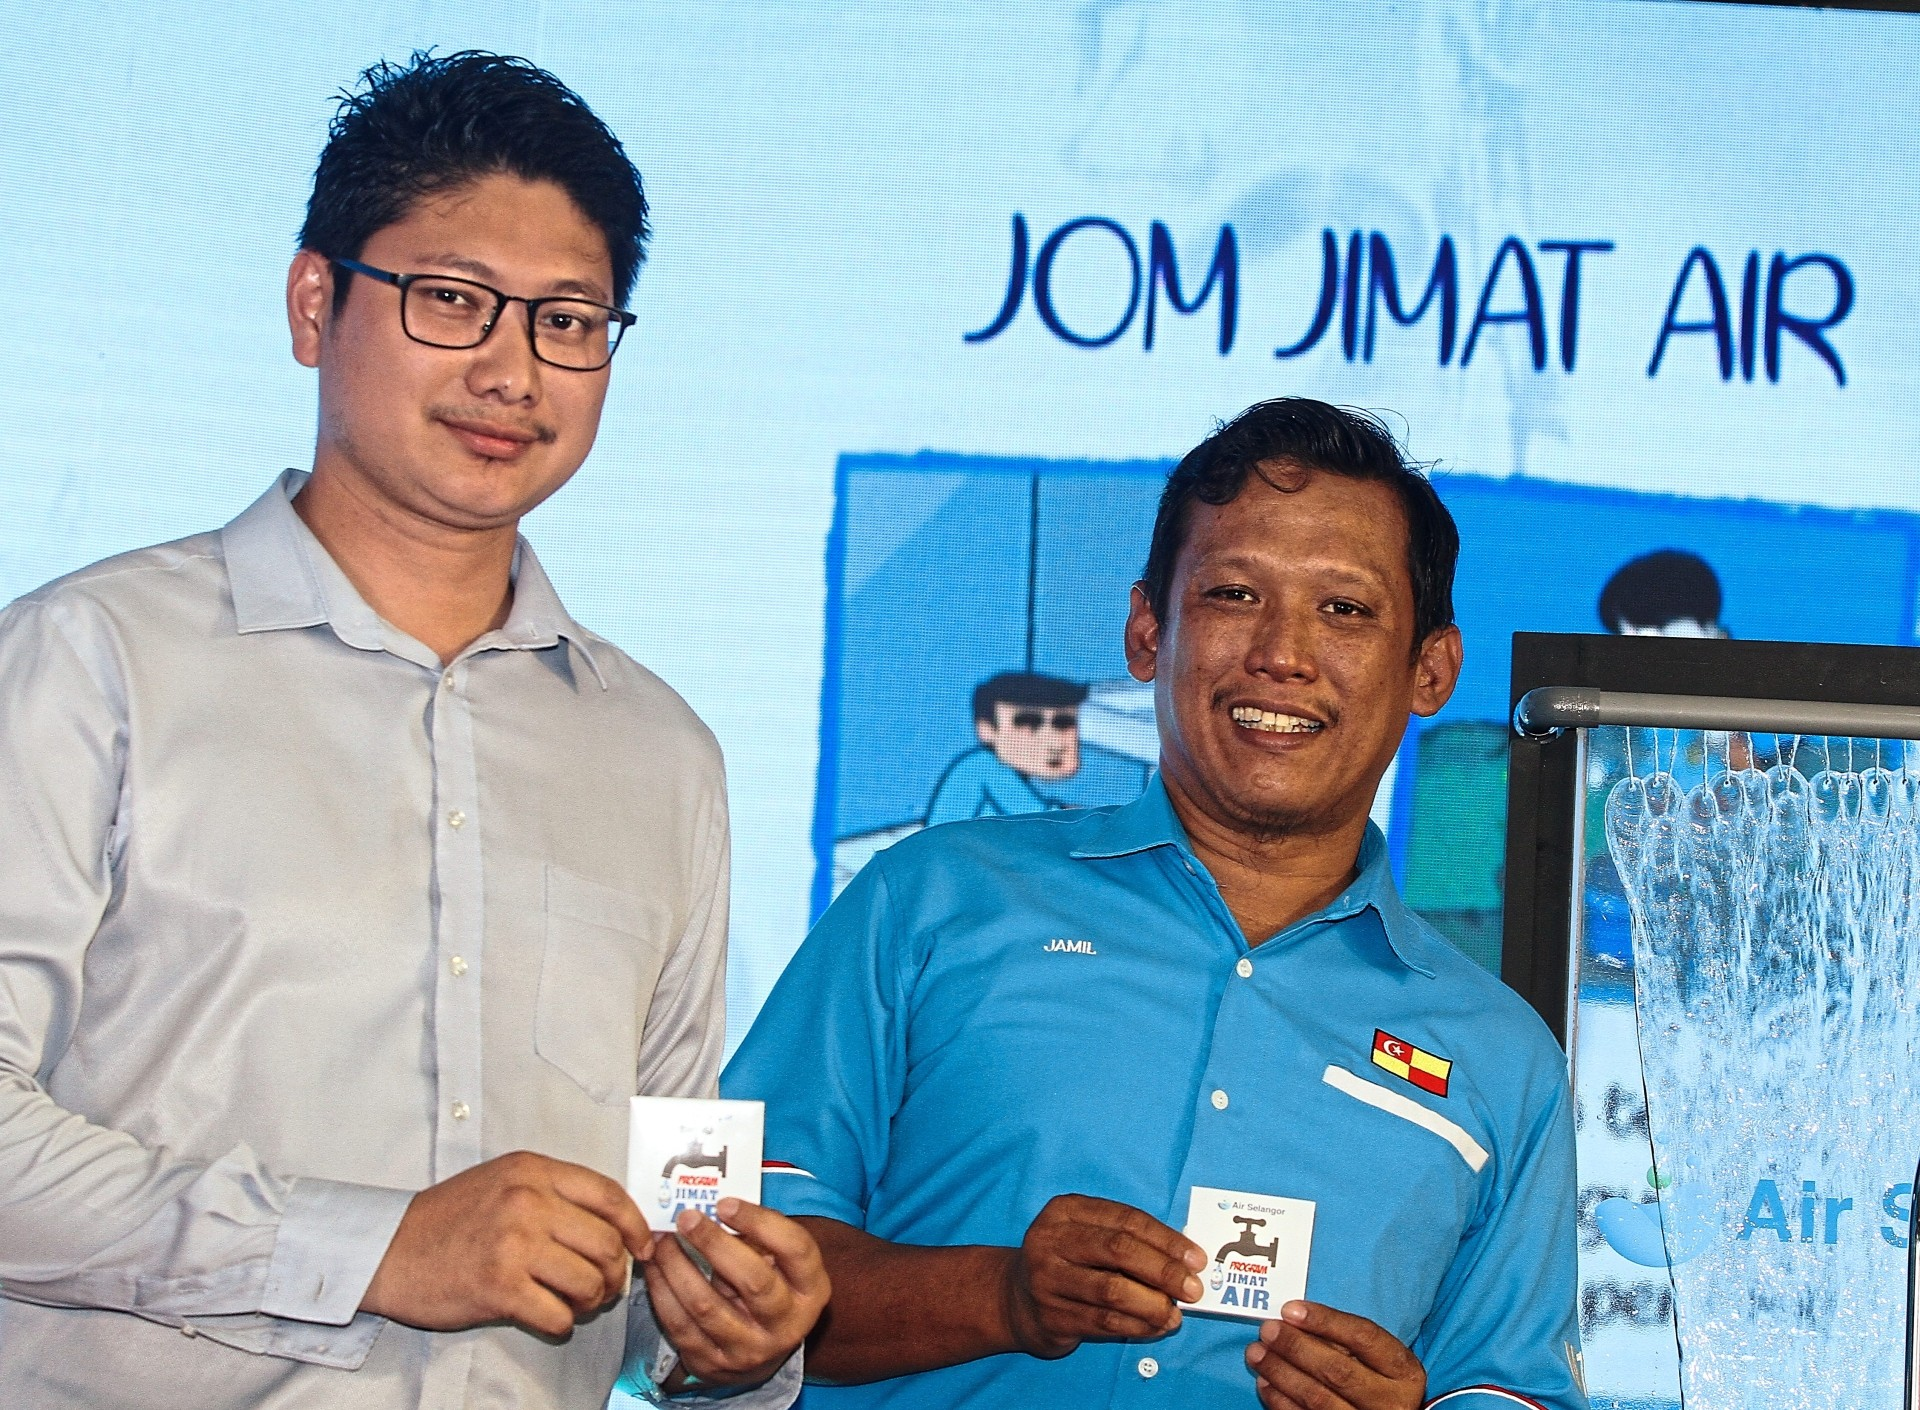 Taman Selayang committee member Mohd Azri Abd Rahman (left) and Kampung Sungai Kertas village chief Jamil Azaman Razak with their water thimbles. Both are dedicated to playing their part in water conservation by educating the community on saving water.